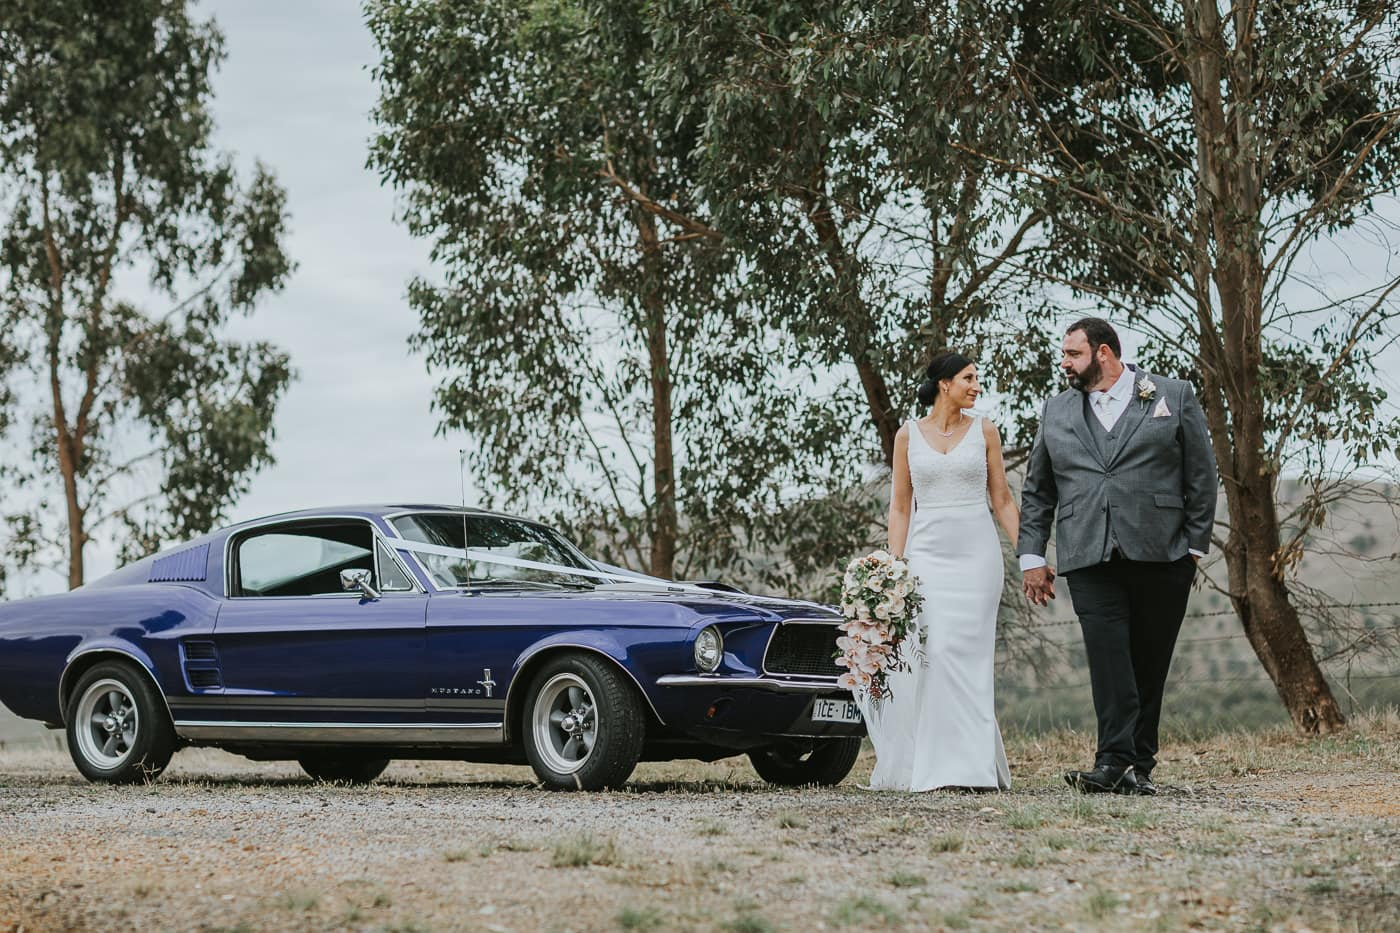 Ford Mustang with Birde and Groom - Wedding Car used inn Wedding photos by Photographer at Flowerdale Estate - Best Wedding pictures